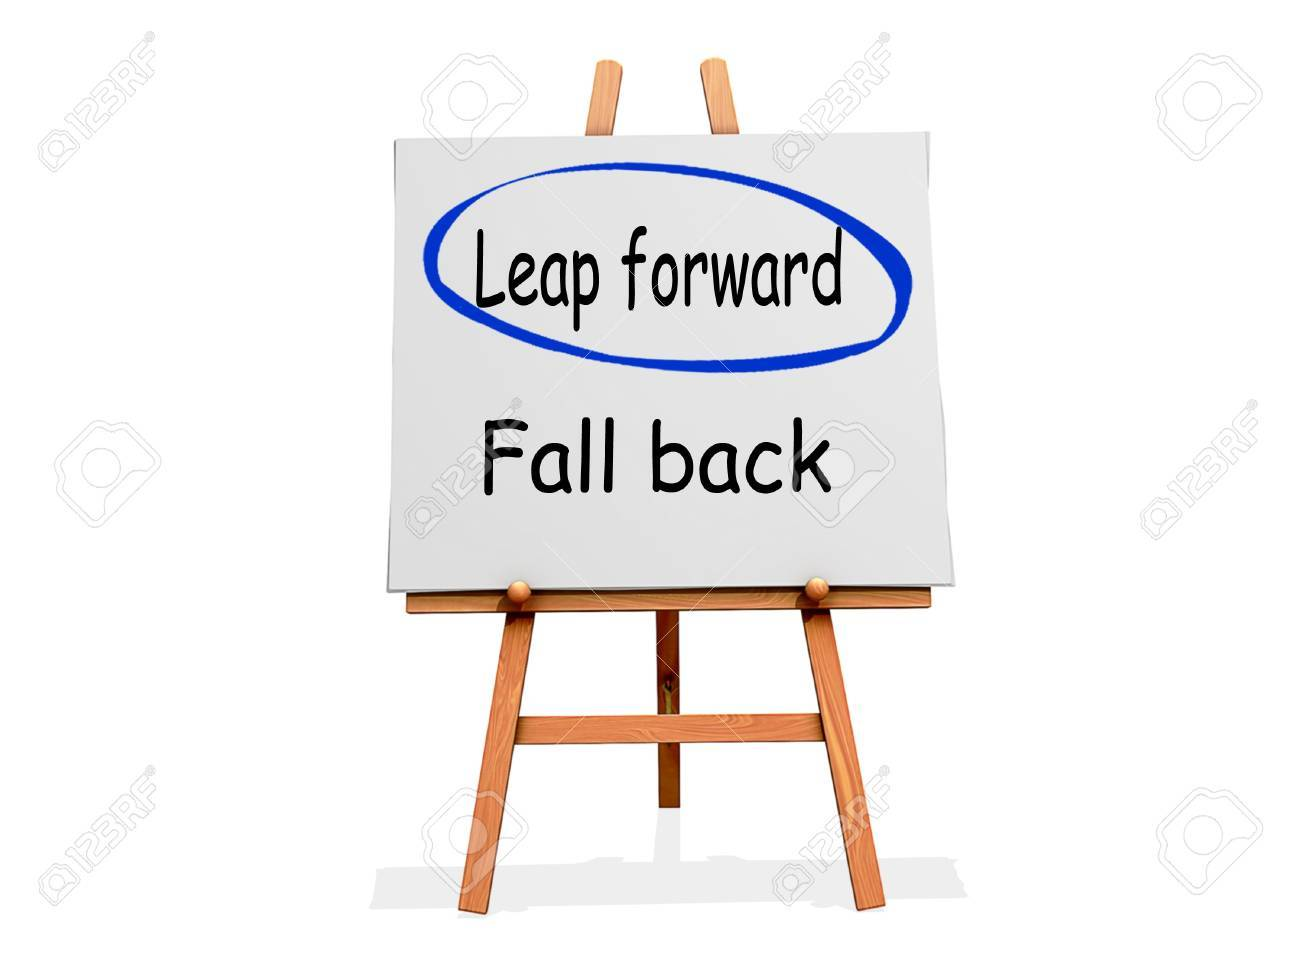 Leap Forward Not Fall Back on a sign. Stock Photo - 19604241